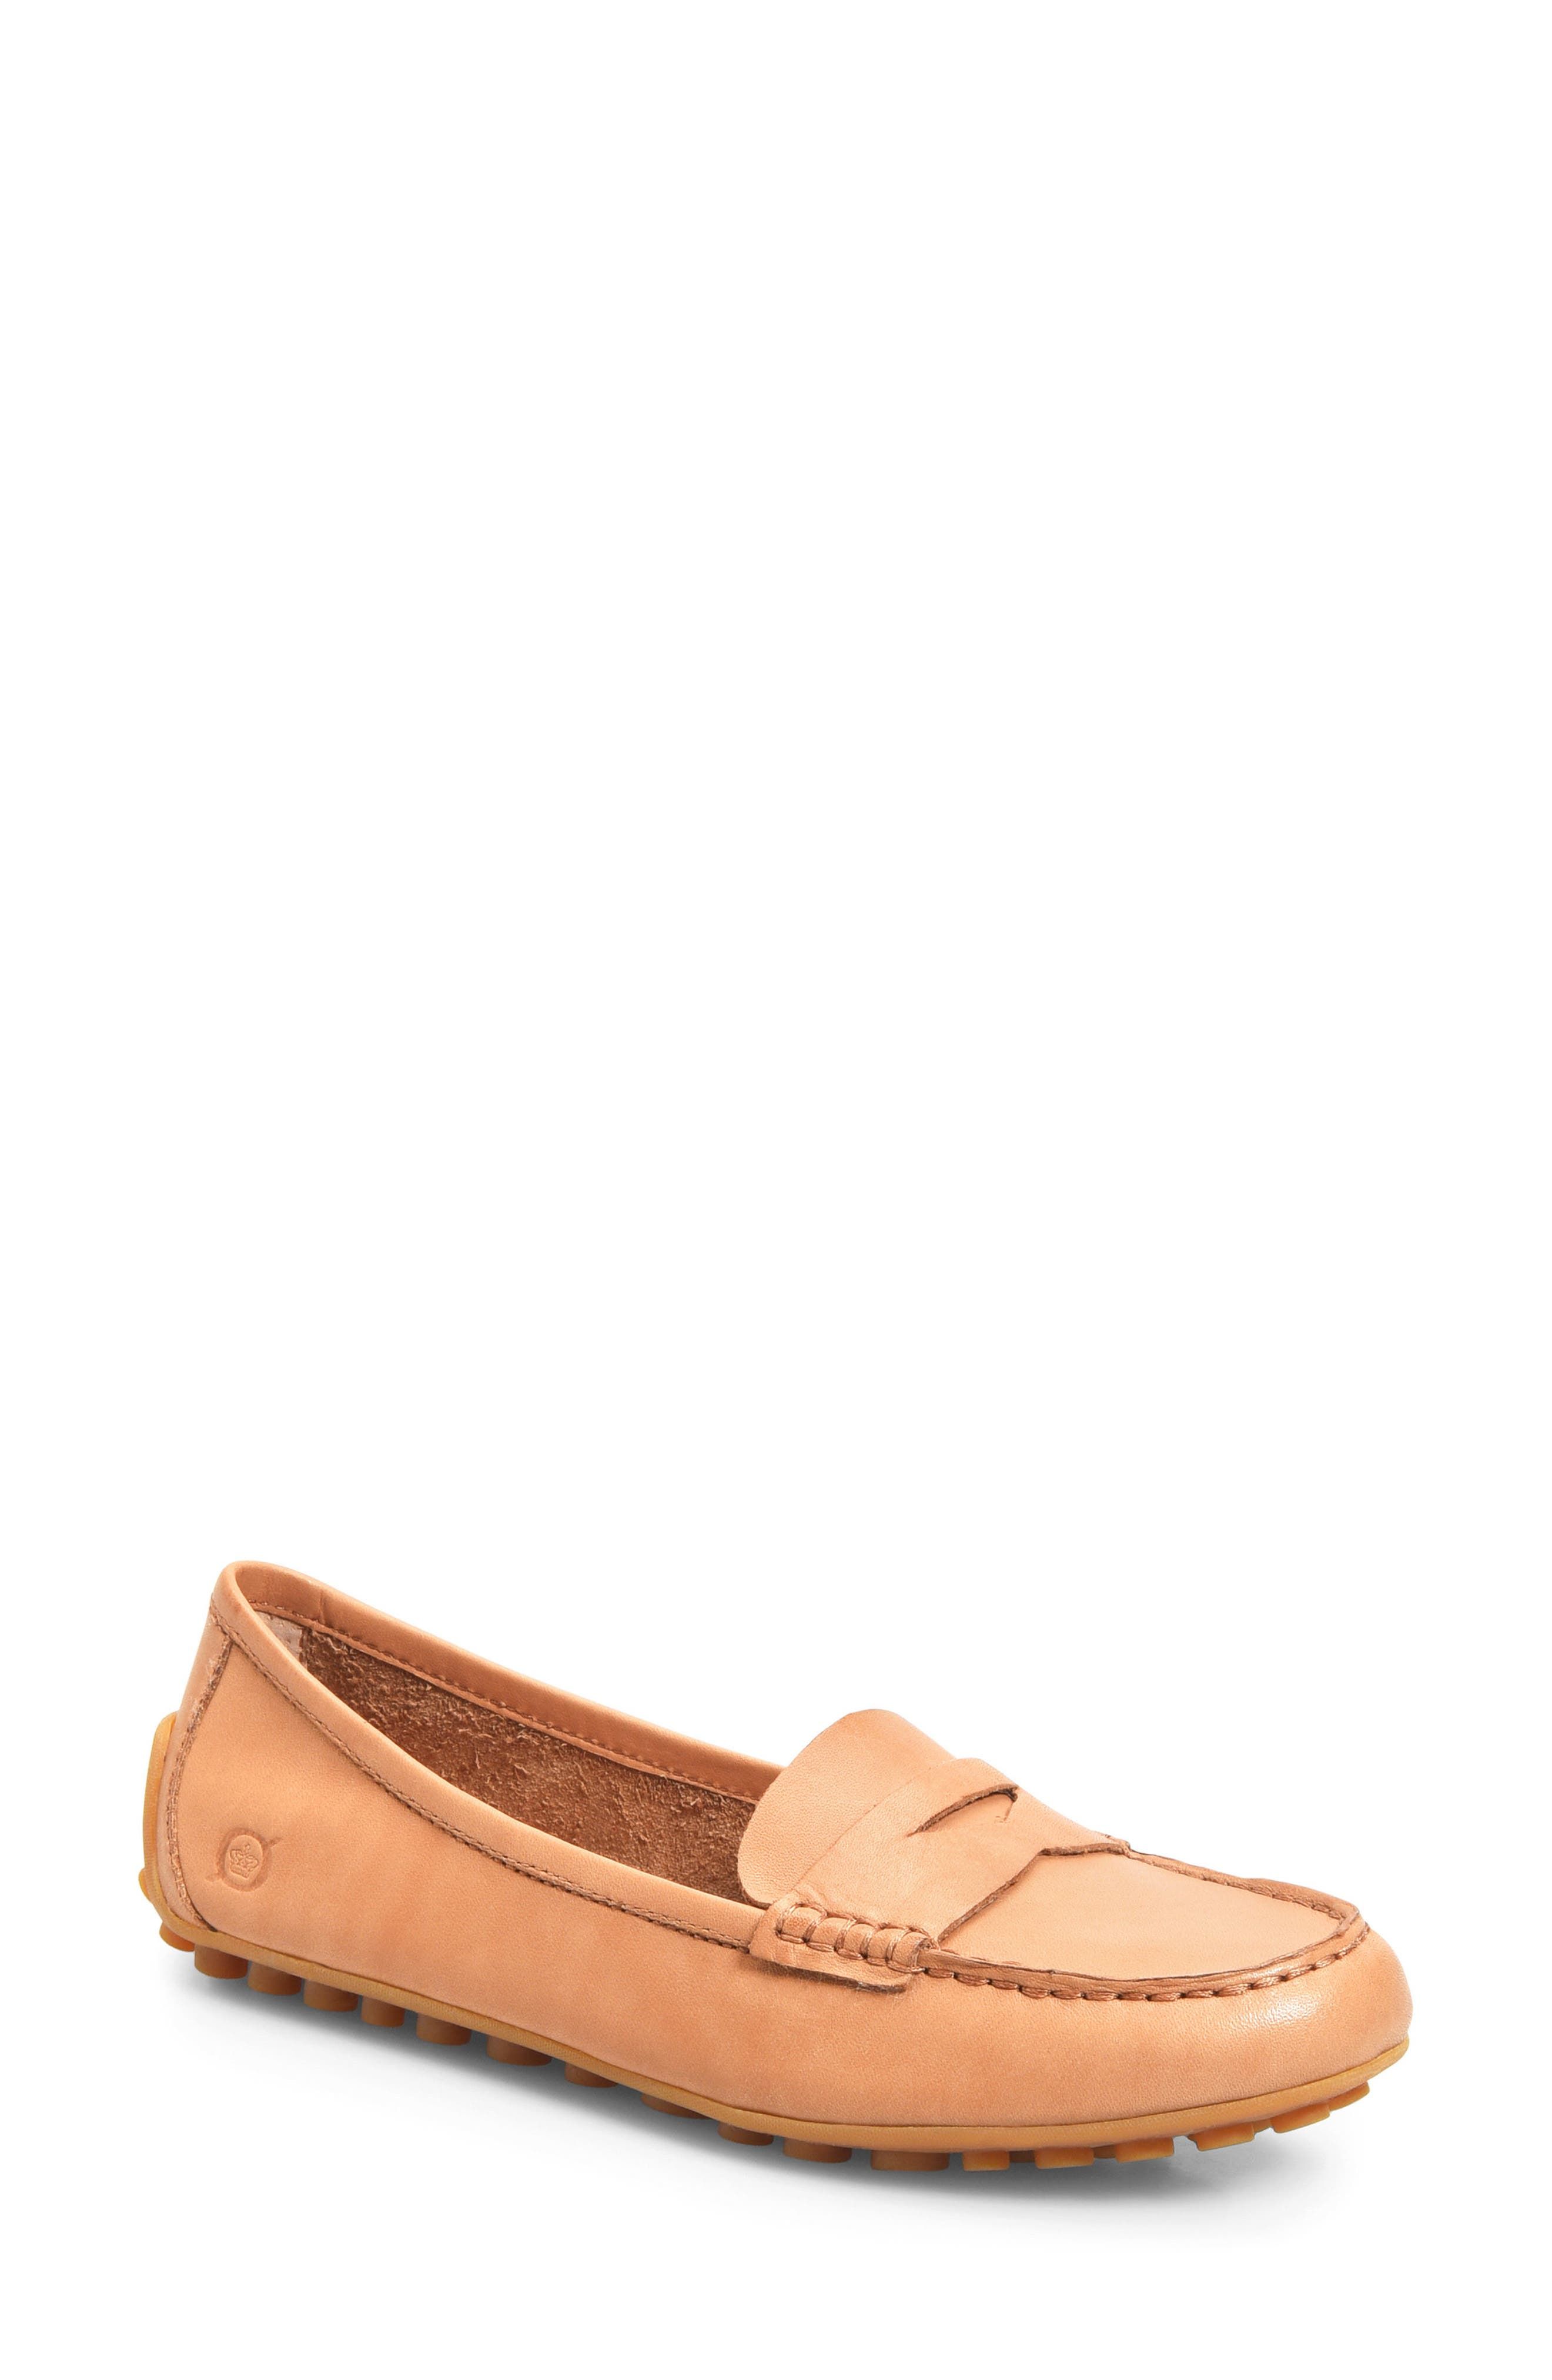 Malena Driving Loafer, Main, color, TAN BROWN LEATHER